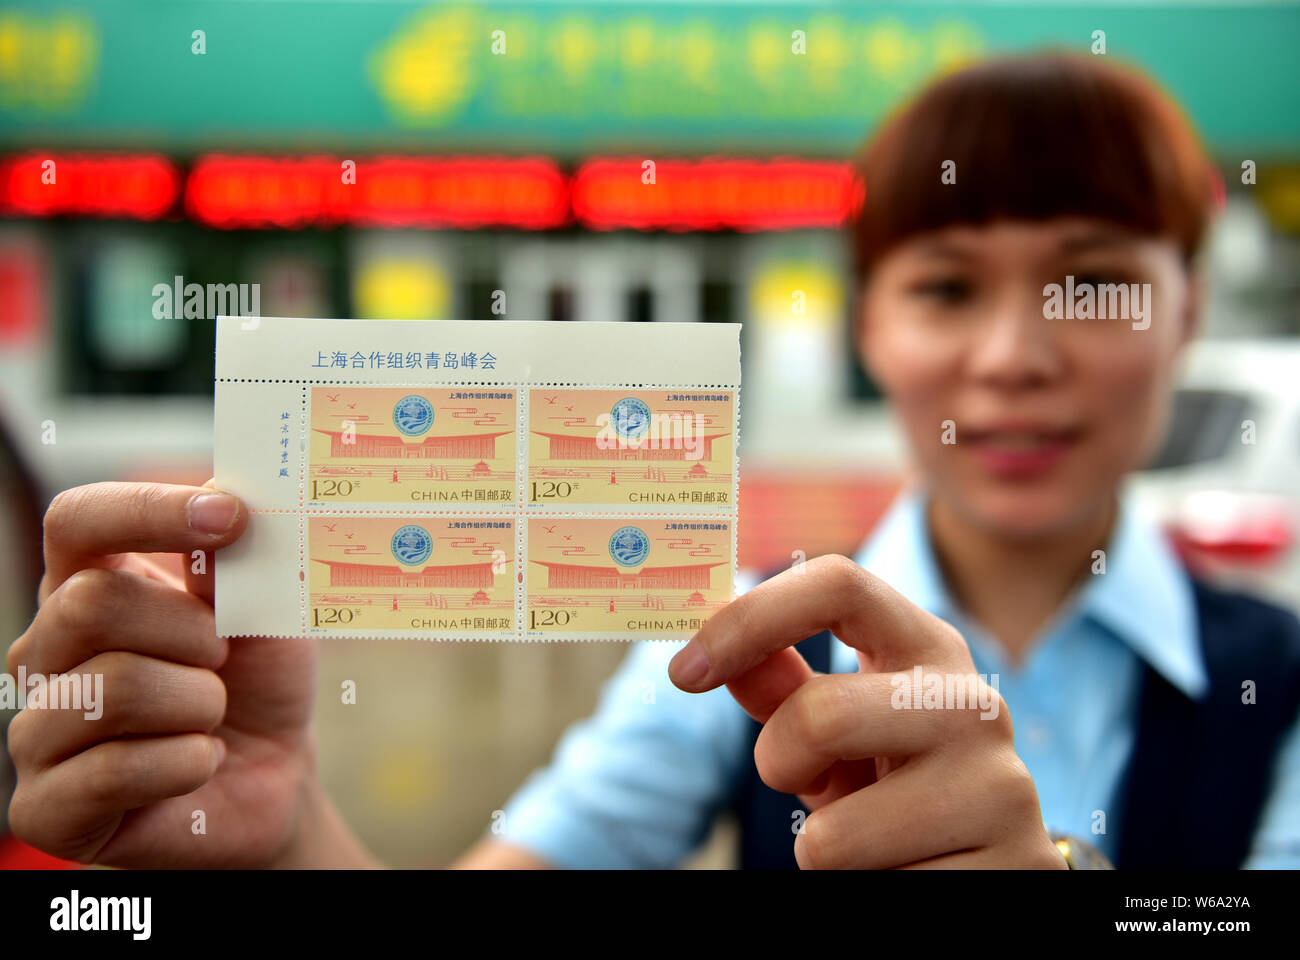 A Chinese employee shows a sheet of stamps commemorating the 18th Shanghai Cooperation Organization (SCO) summit at a China Post Office in Xinle city, Stock Photo